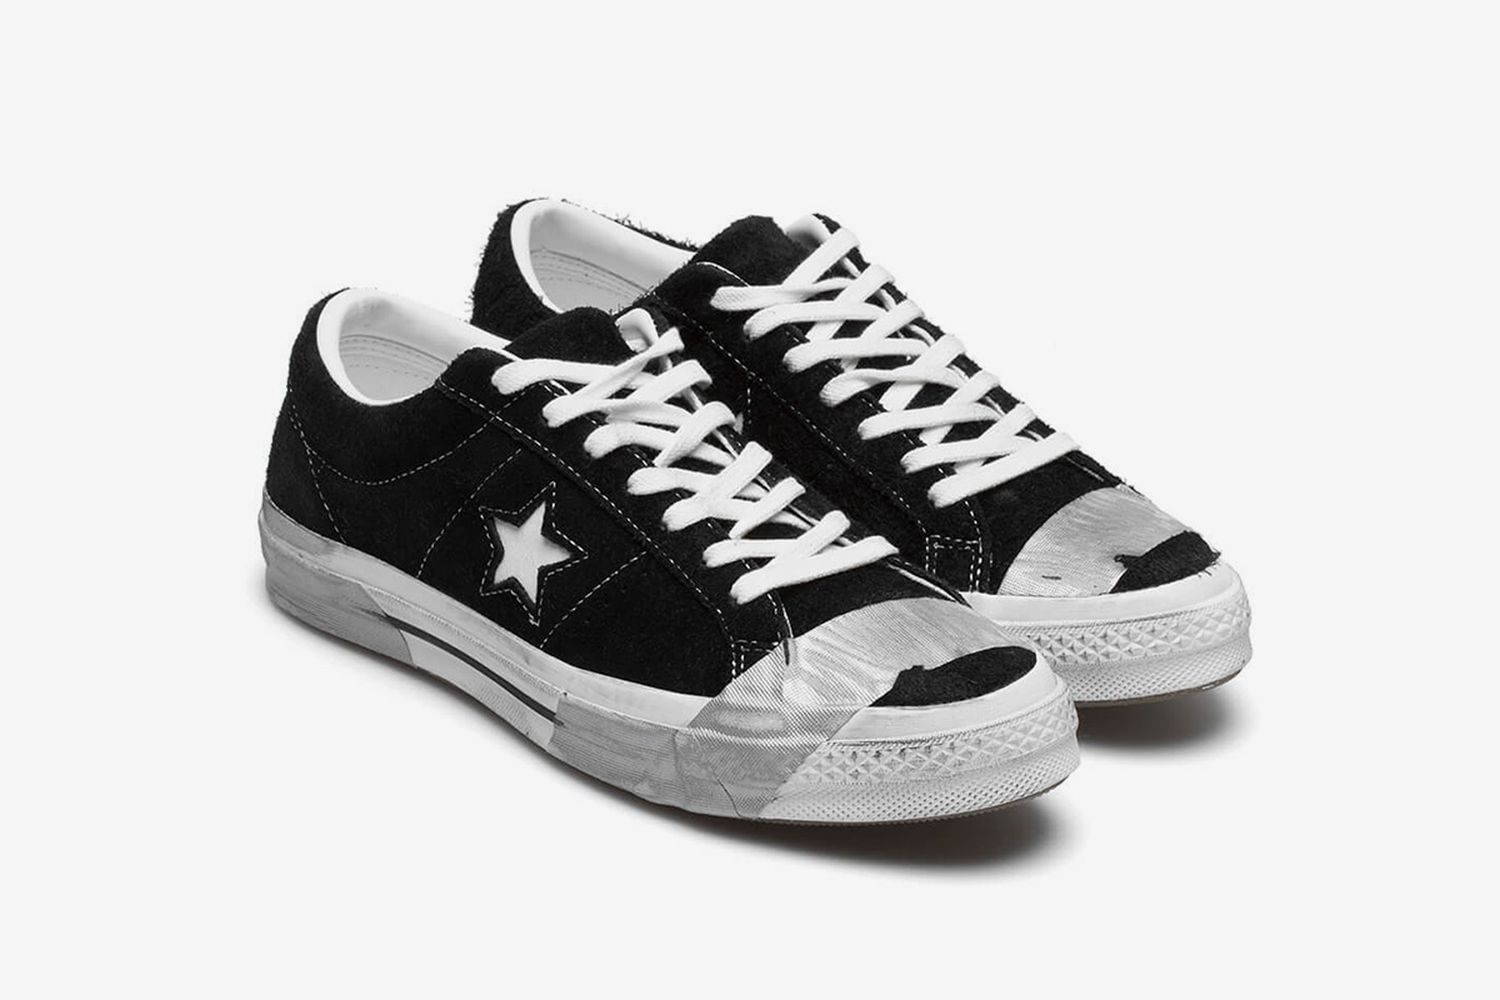 Converse One Star OX LTD Sneakers: Where to Cop